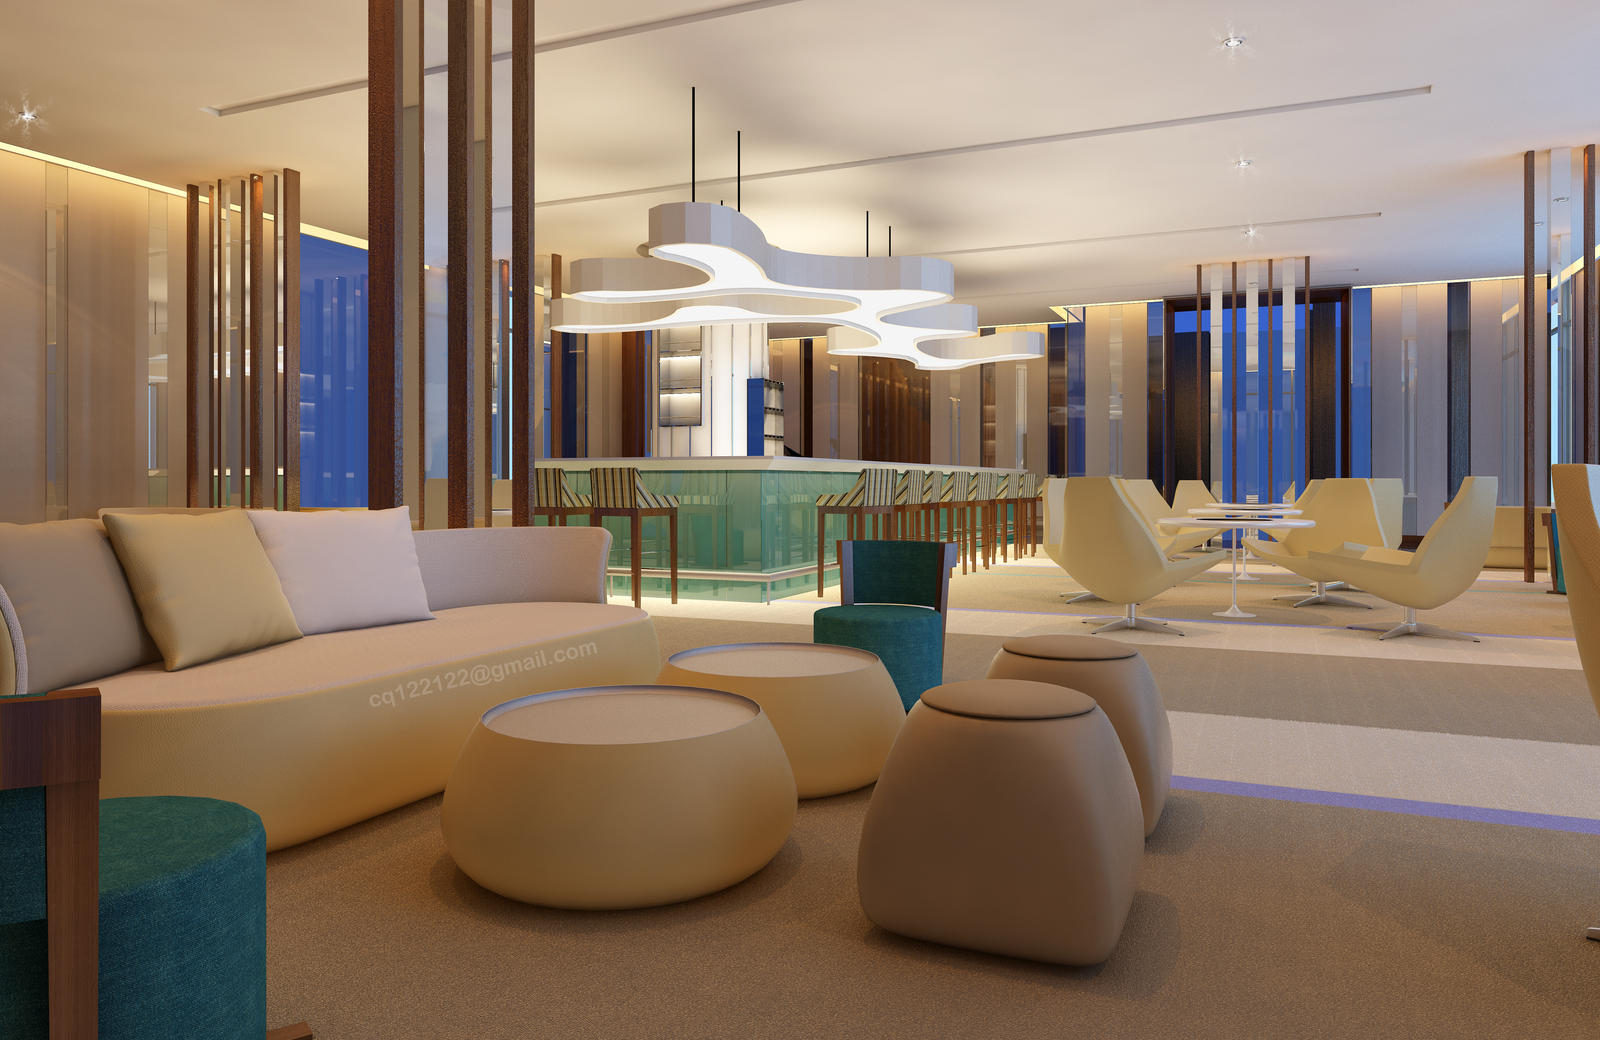 Hotel lounge bar design by douglasdao on deviantart for Lounge pictures designs